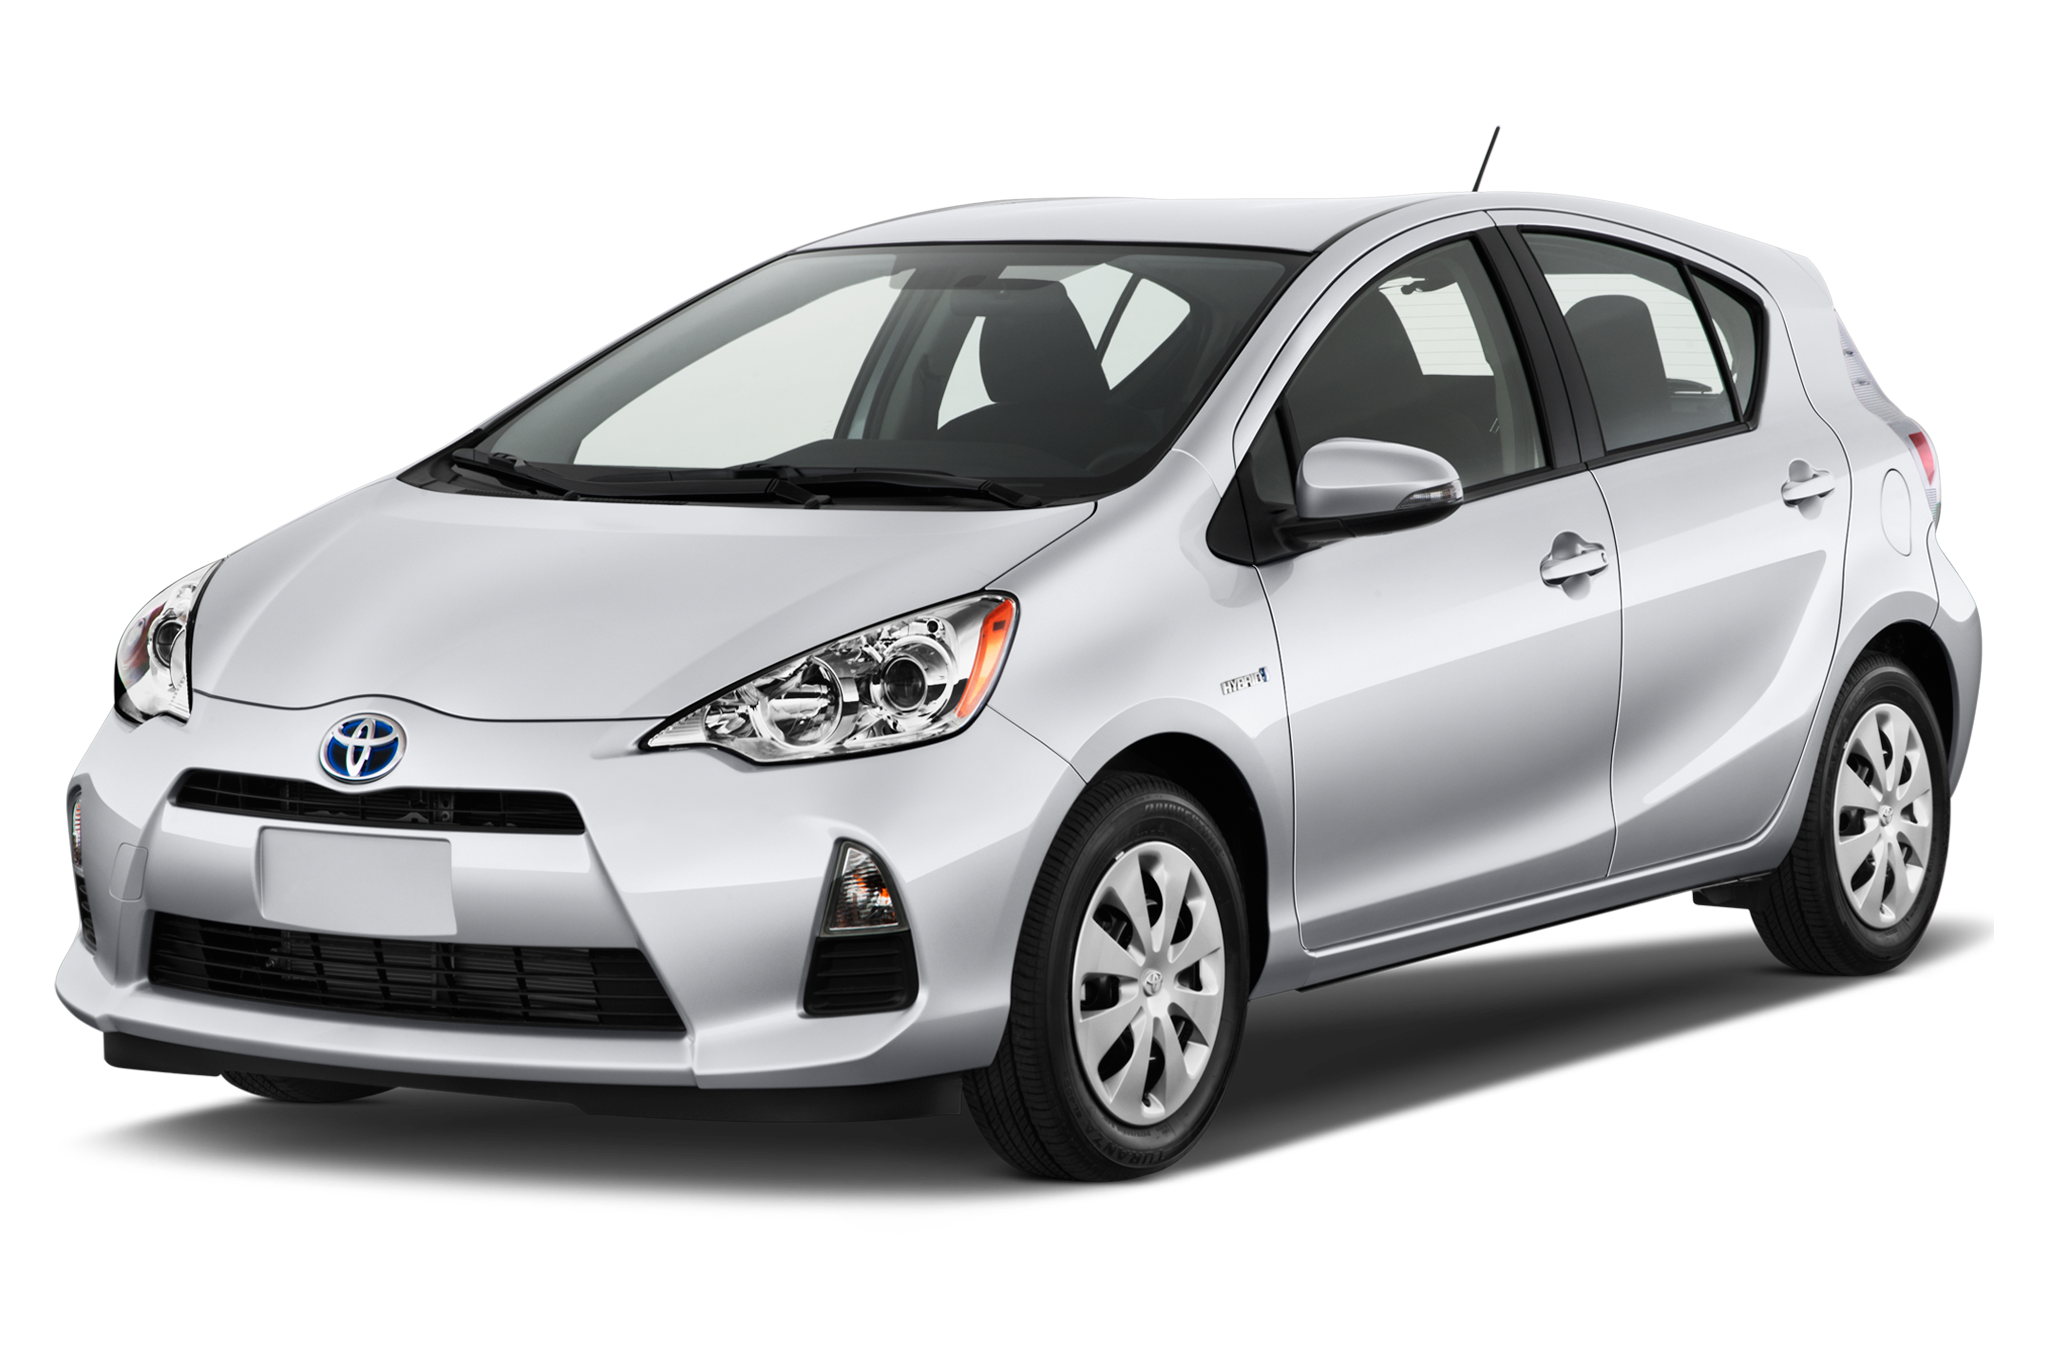 2013 toyota prius c reviews and rating | motortrend